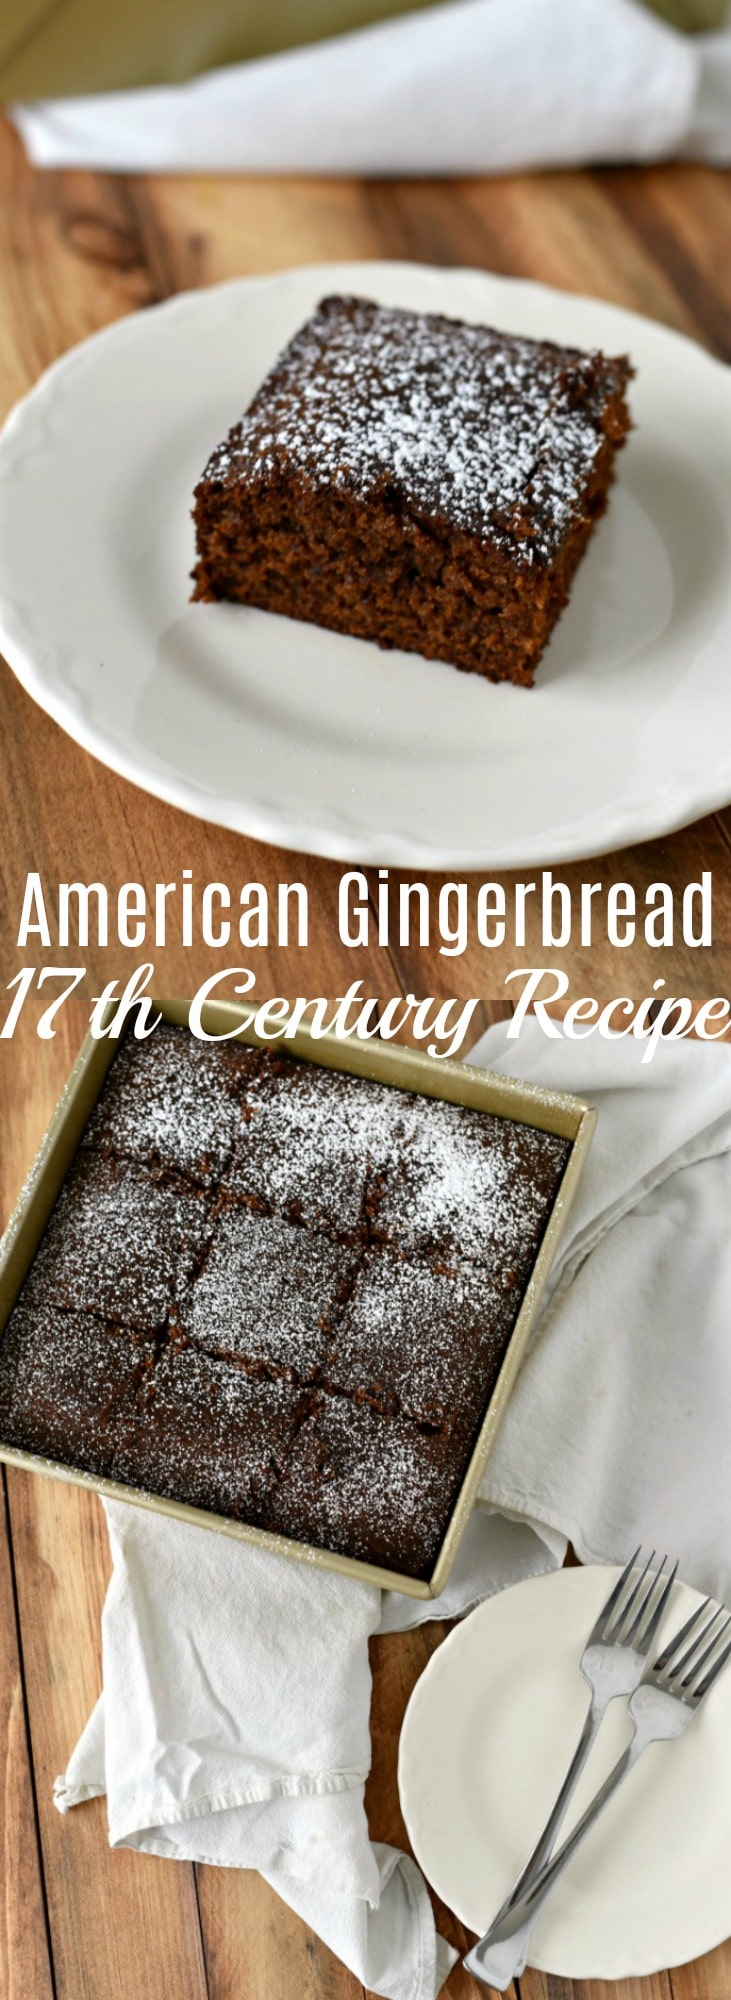 American 17th Century Gingerbread - Historically Hungry. This easy to make historical 17th century gingerbread cake recipe is flavorful, dense, and moist, and still as perfect today as it was back then.